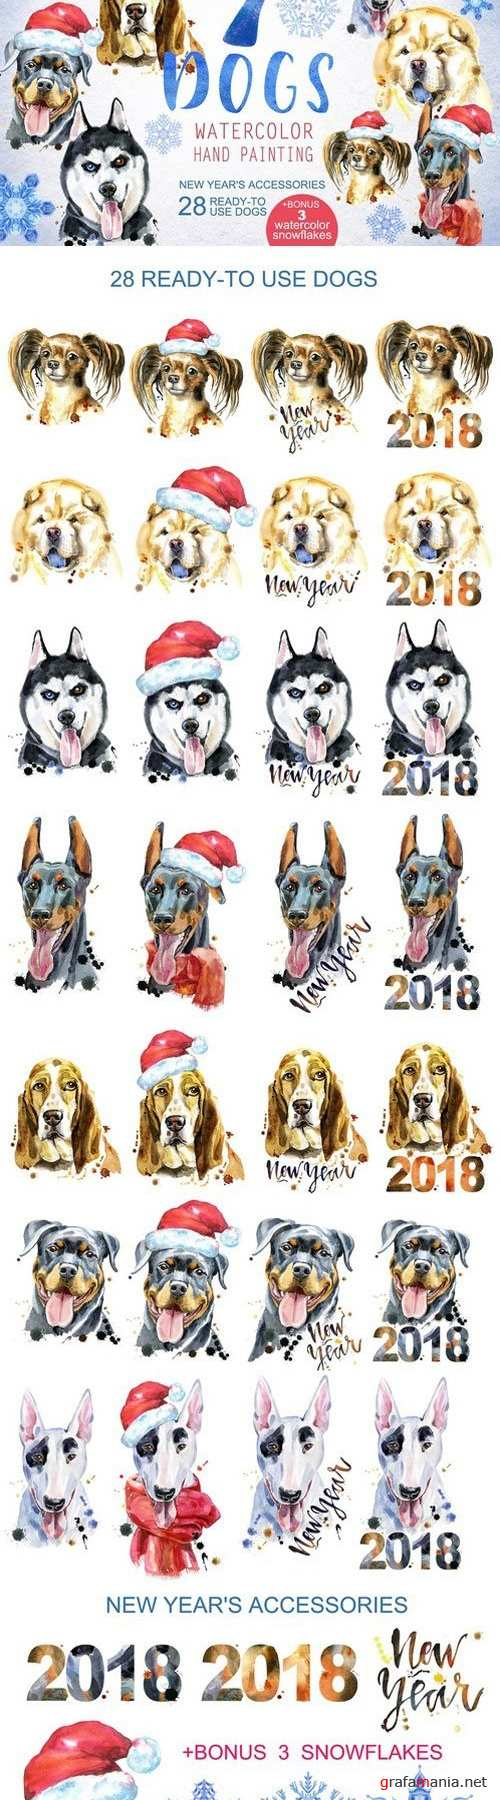 Watercolor dogs. New Year's set 2022903